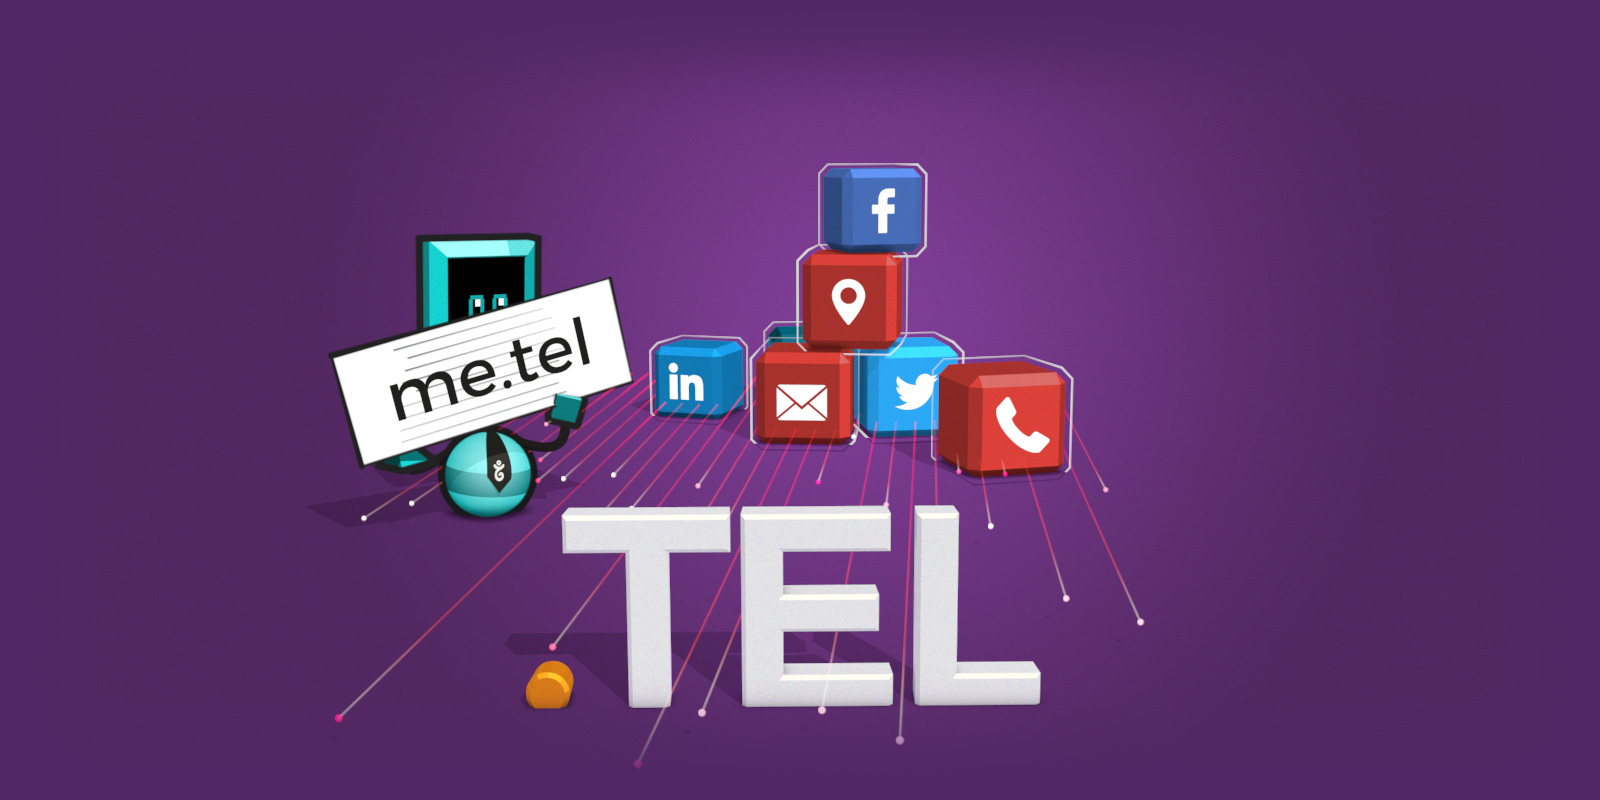 Let us tell you about .tel